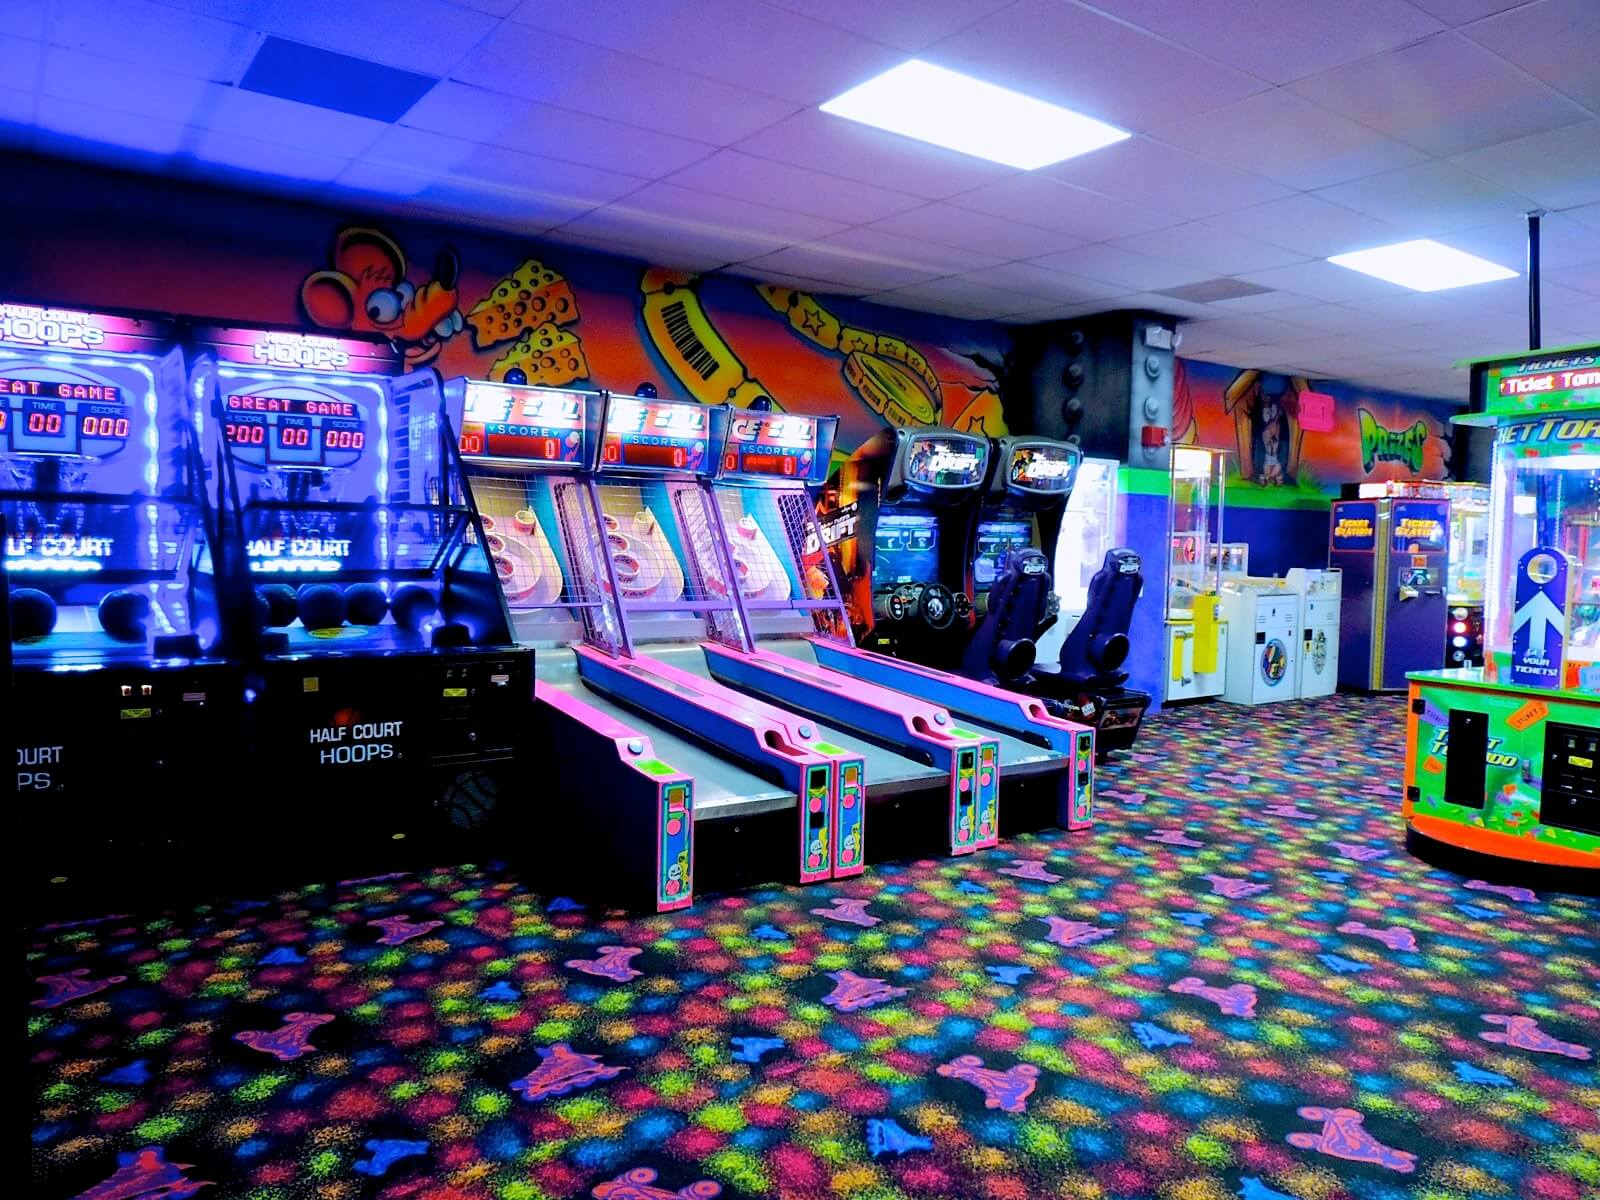 Price Center Game Room